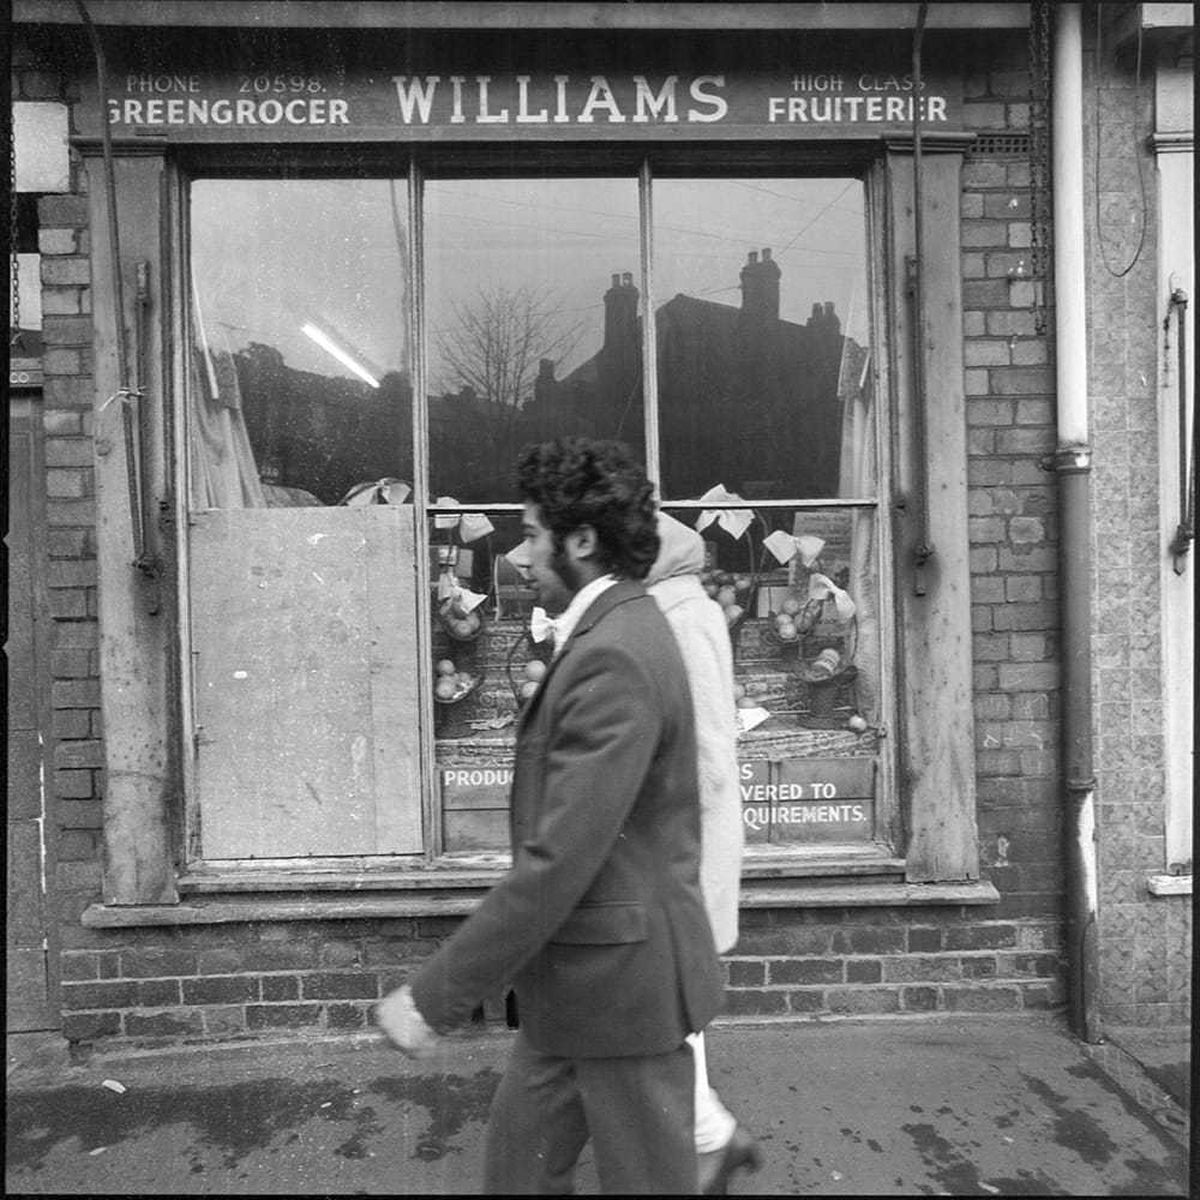 Jack Williams the grocery shop